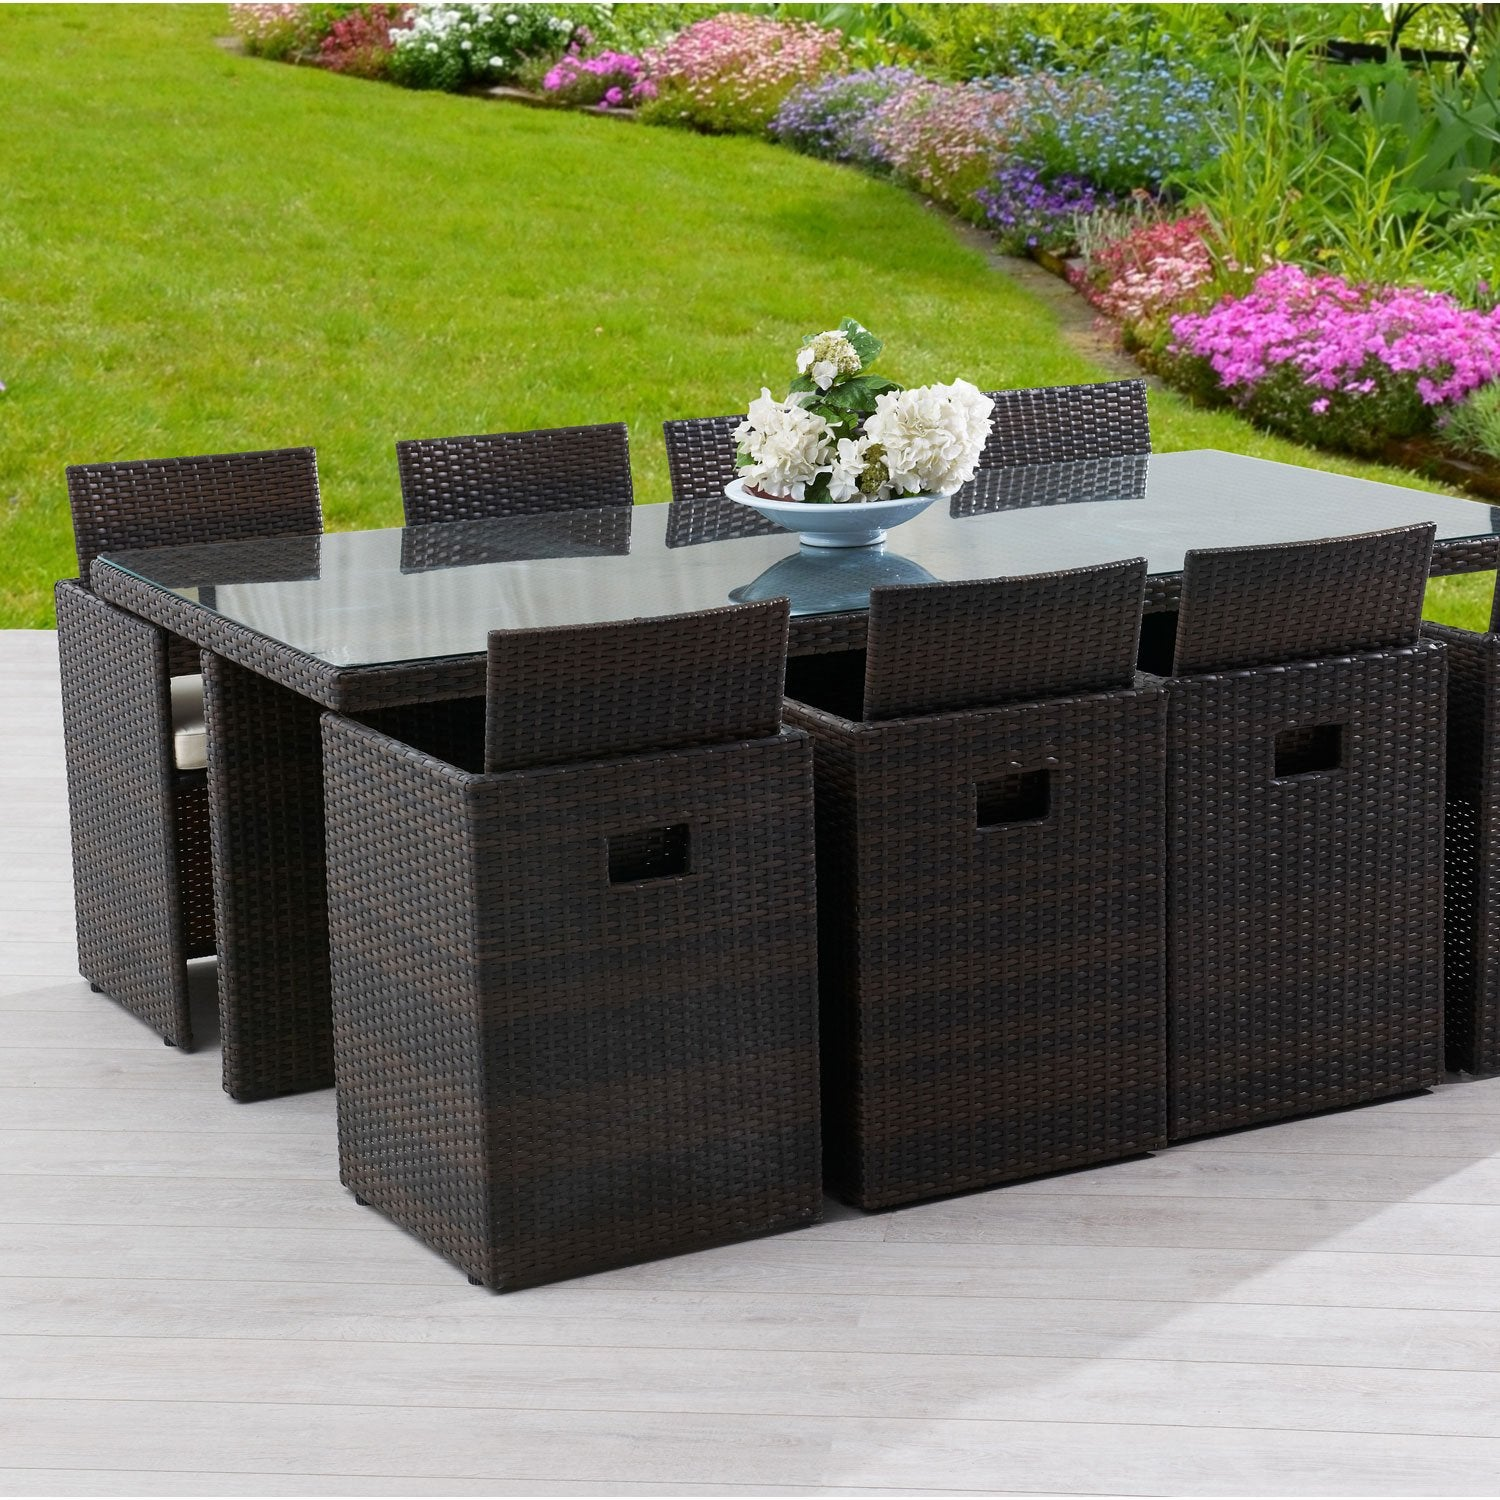 Salon de jardin encastrable r sine tress e marron 1 table - Salon de jardin tressee ...